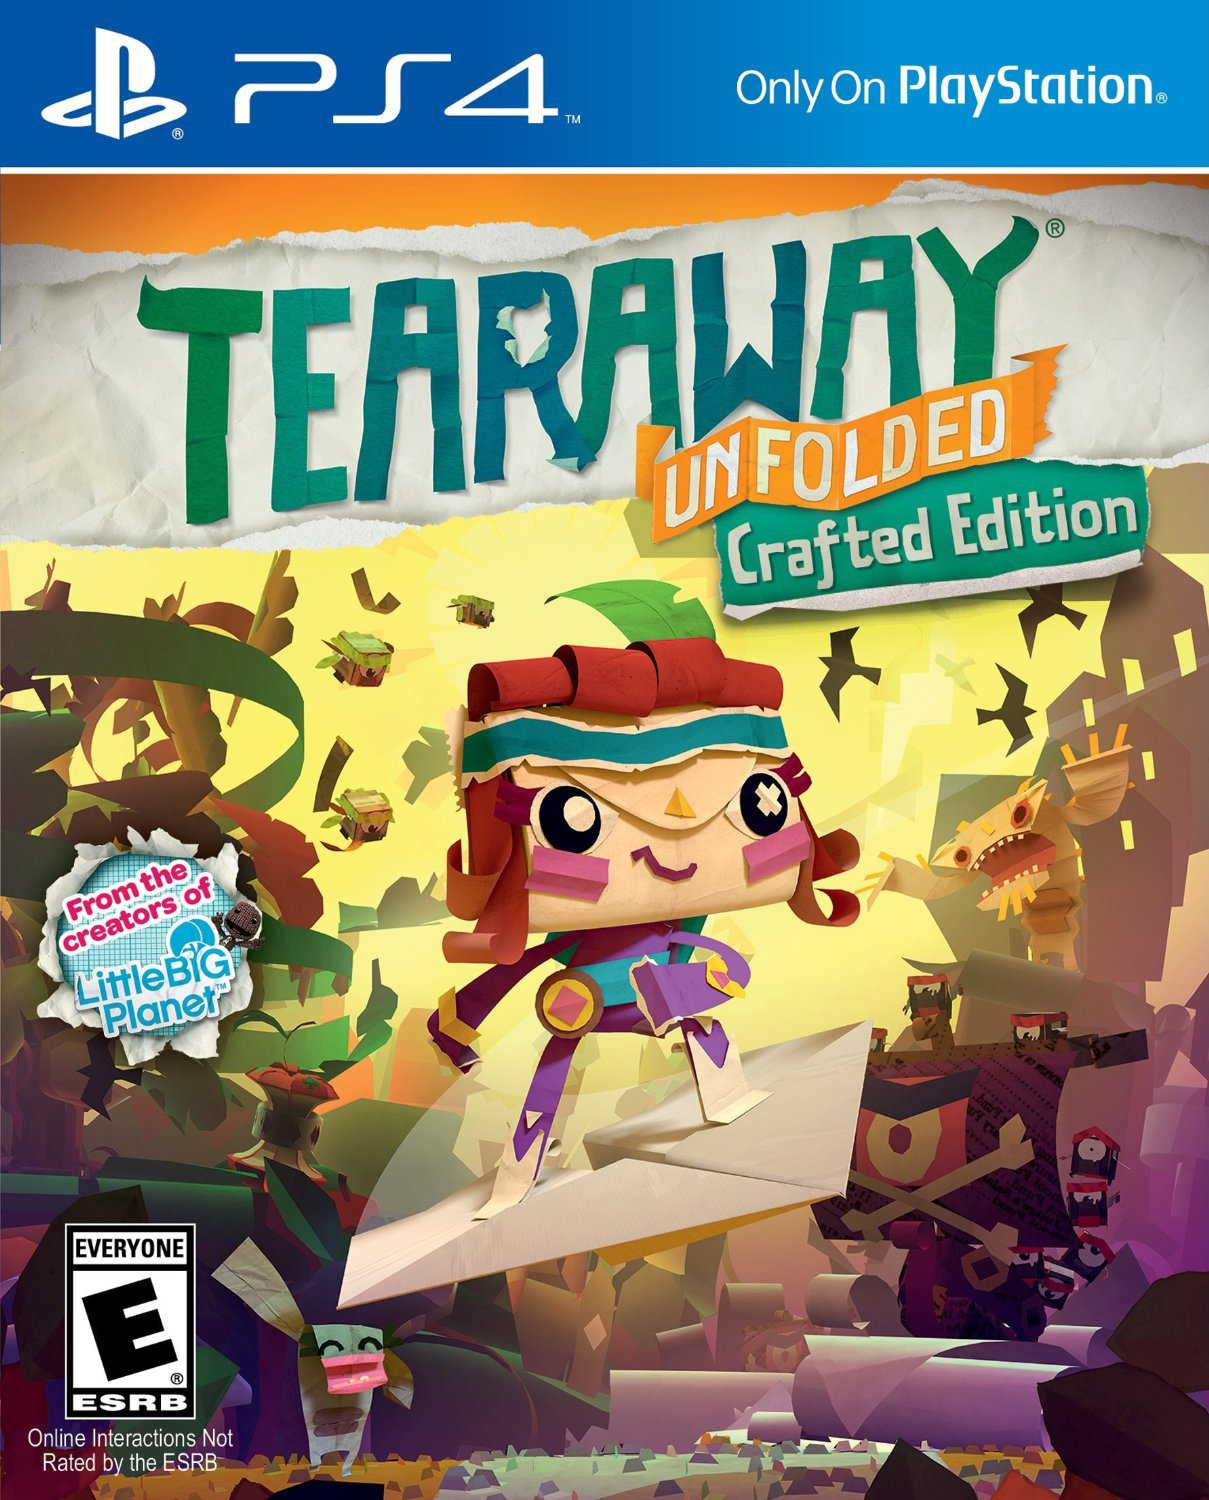 Tearaway Unfolded Crafted